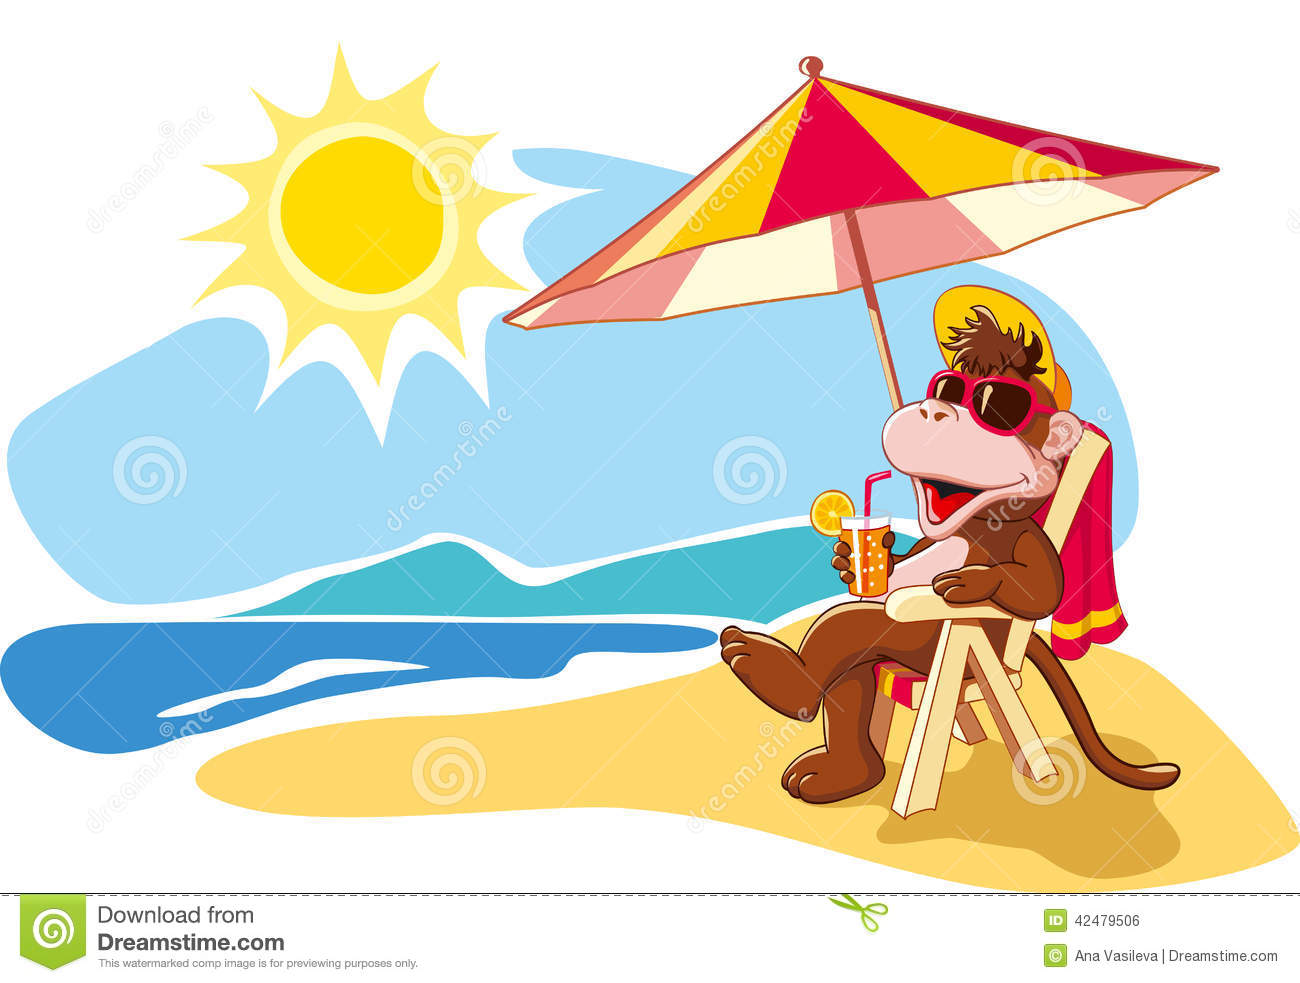 Funny Cartoon Monkey Relaxing On Beach Chair By Sea In Summer Vacation